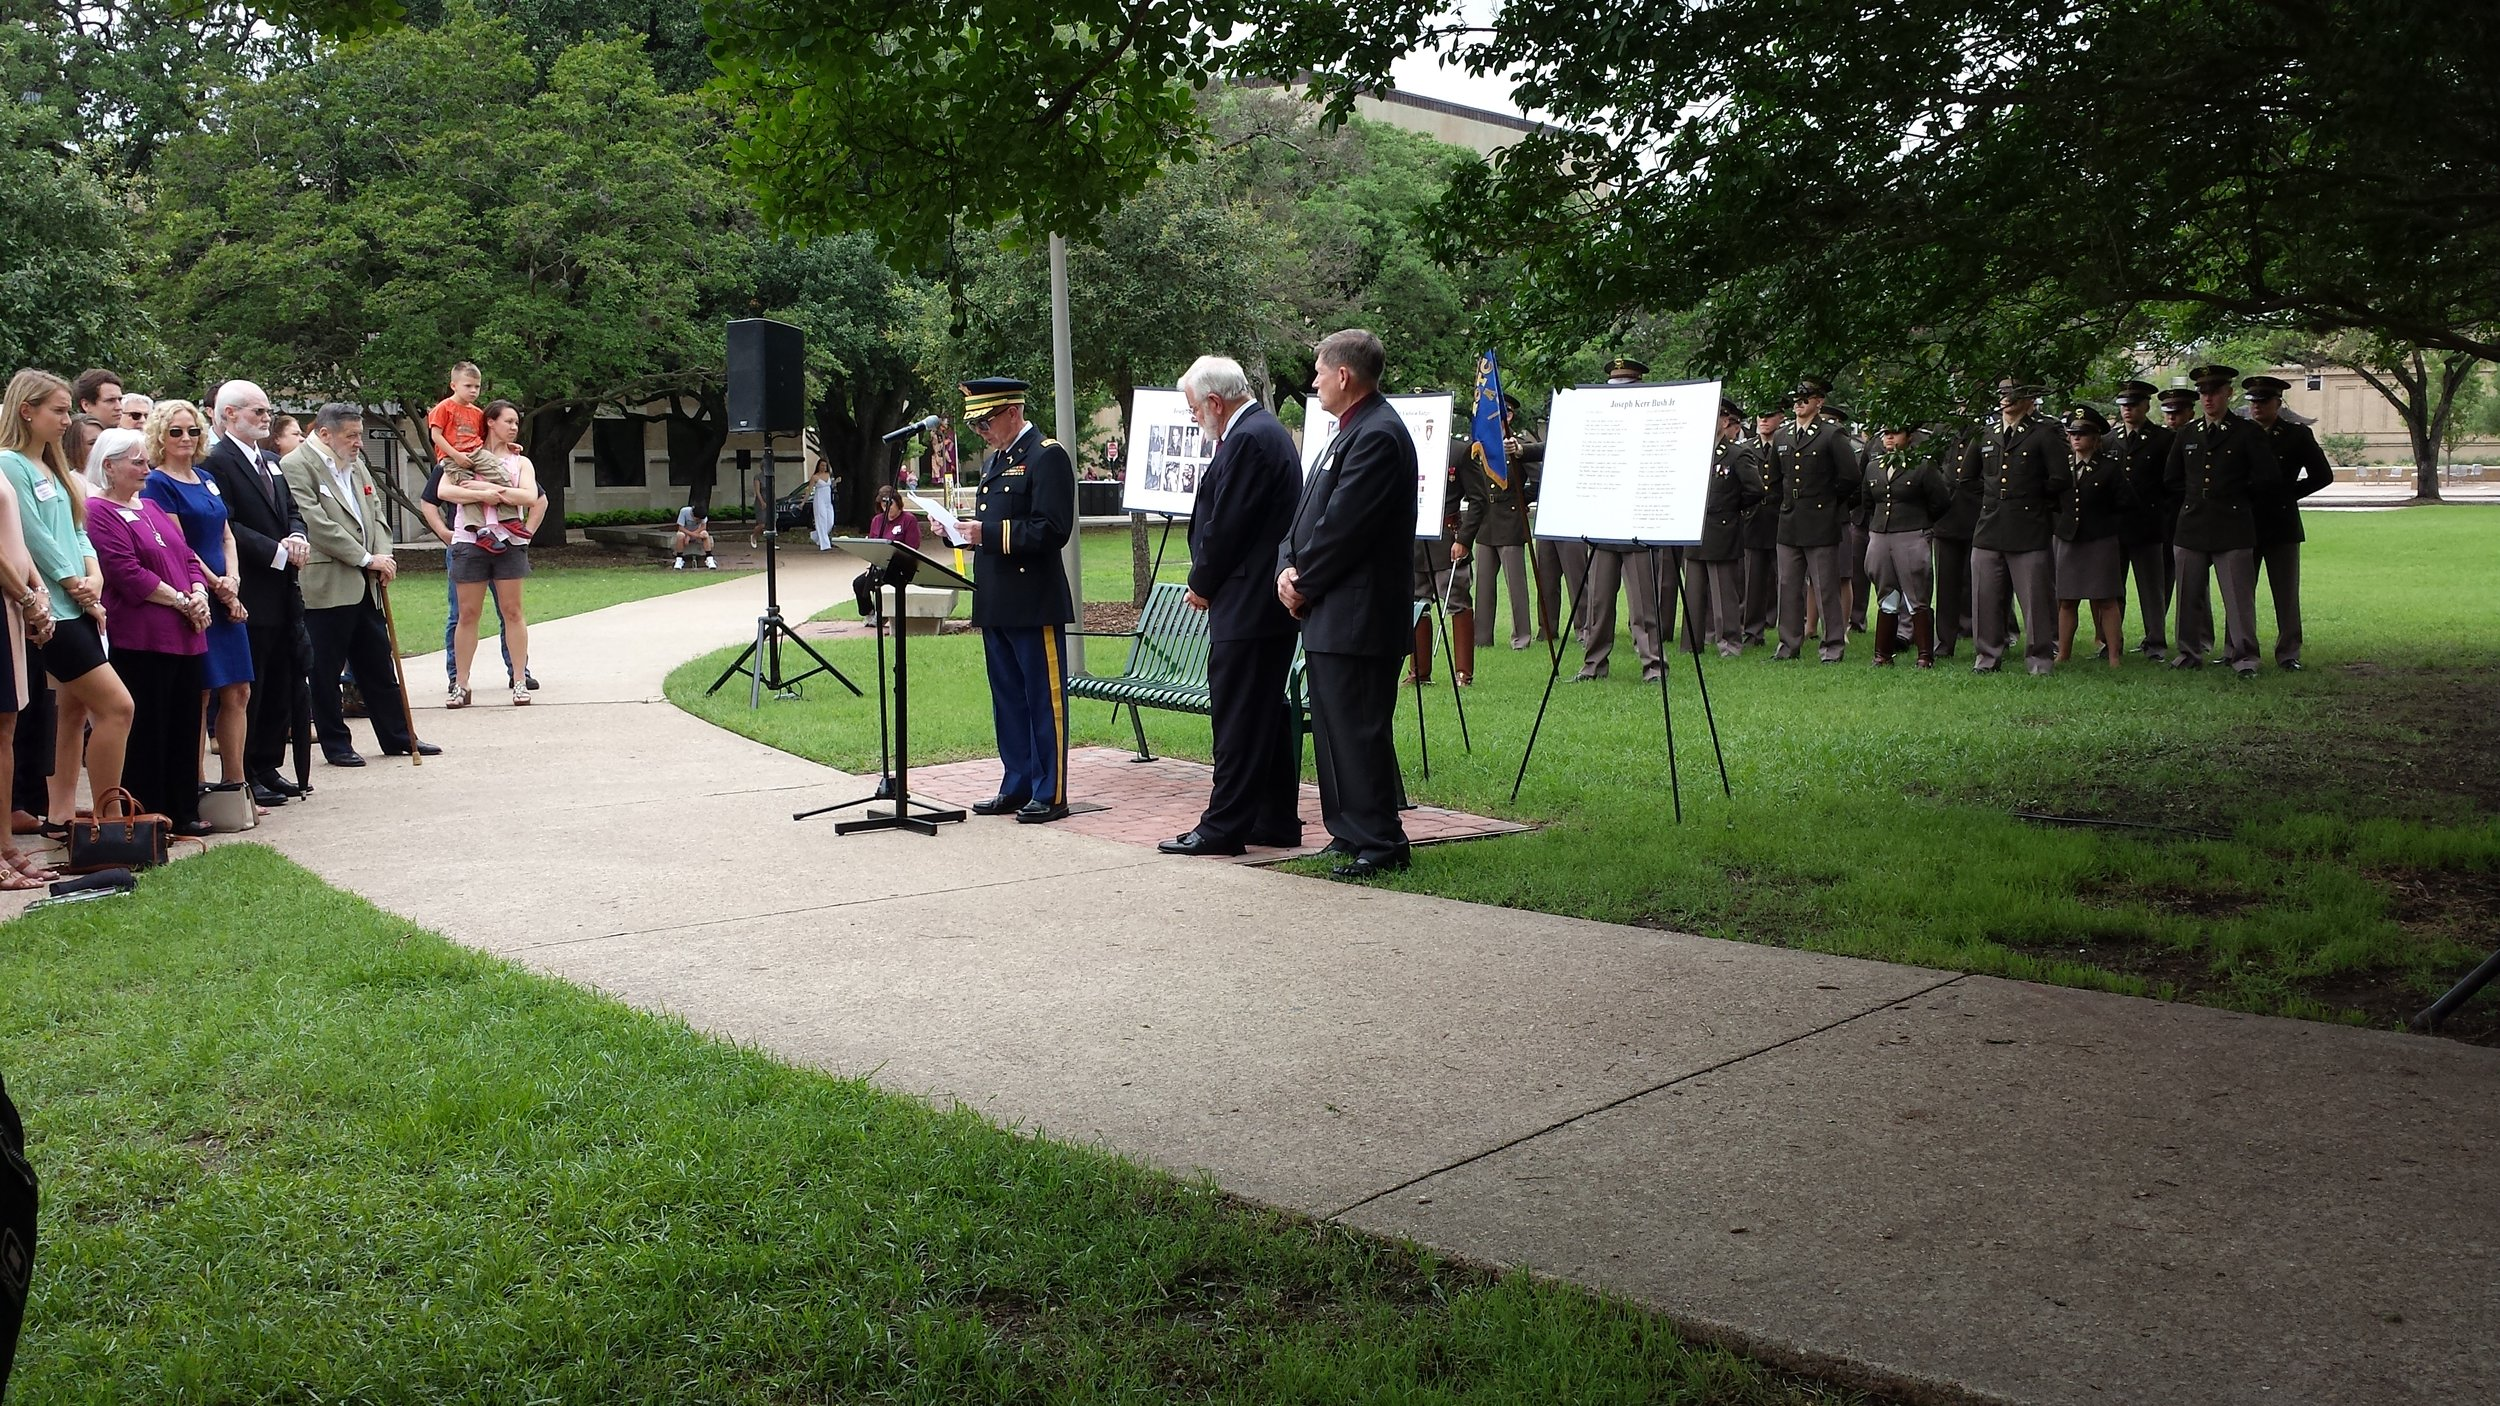 4-18-15 Memorial Ceremony @ Texas A&M.jpg